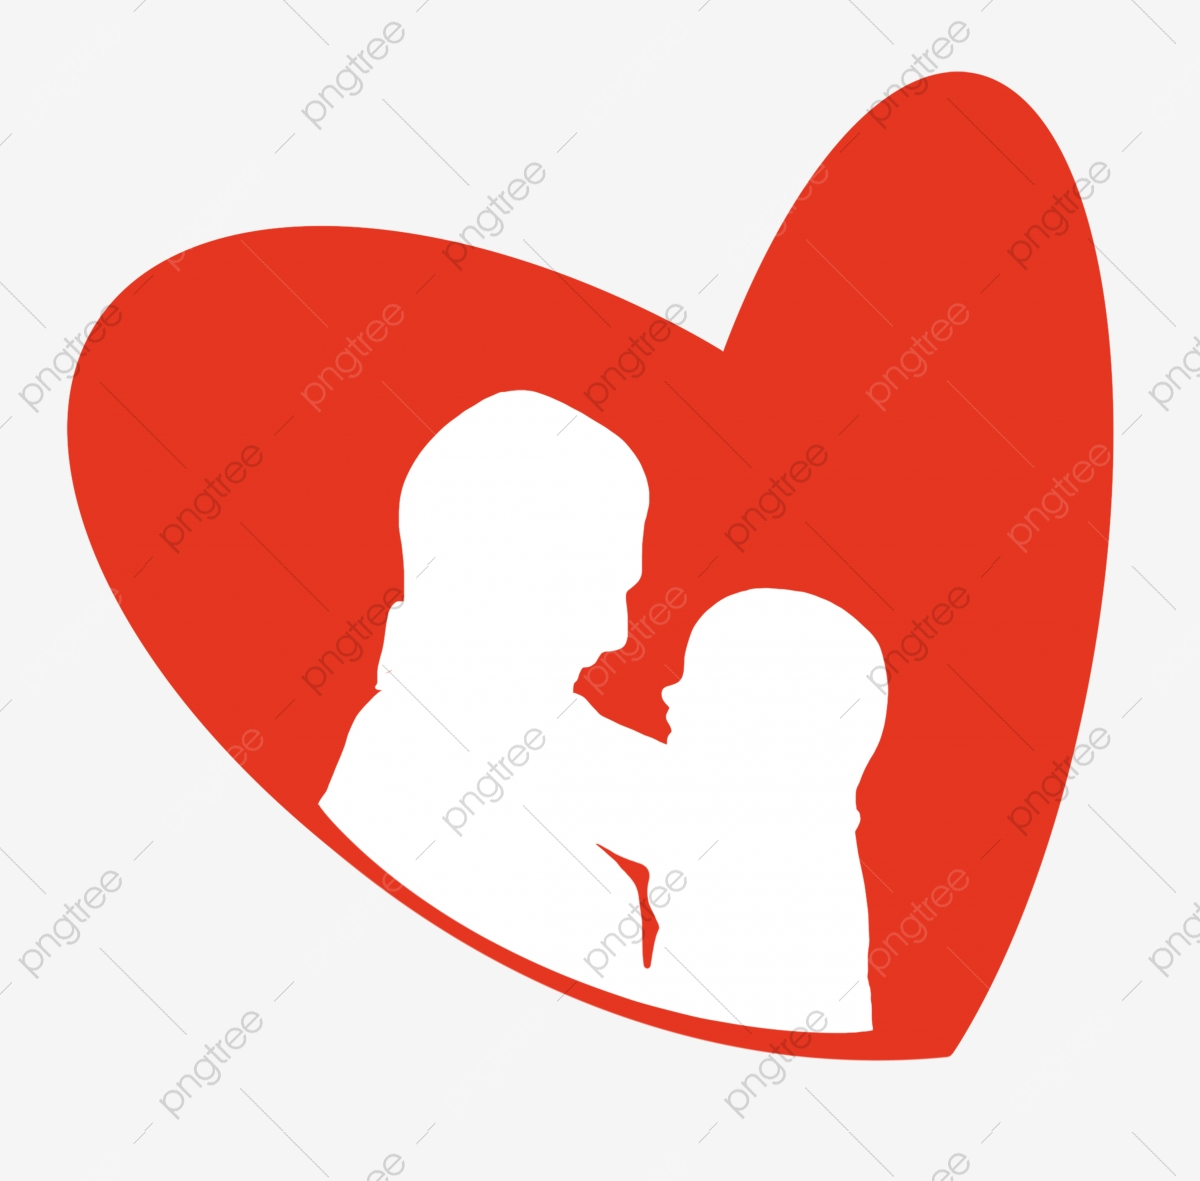 Silhouette Clip Art - Tree - Couple In Love Transparent PNG